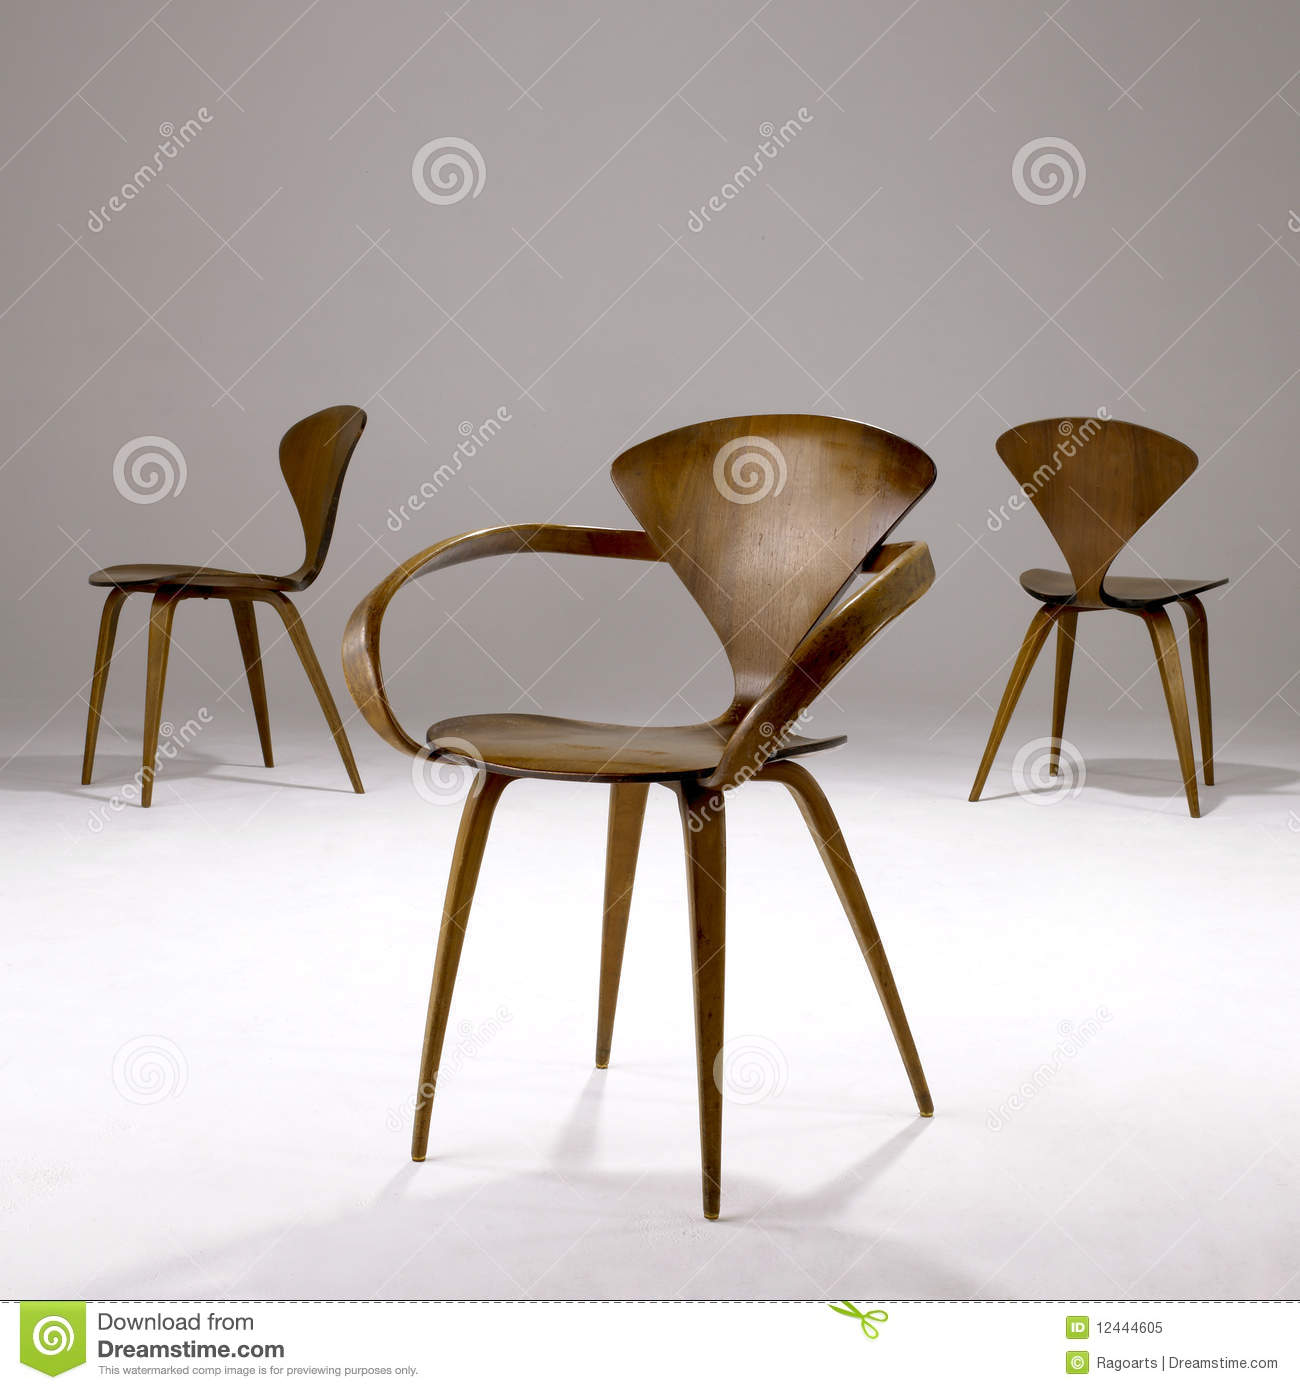 Iconic modern design chairs editorial image image of quality furniture 12444605